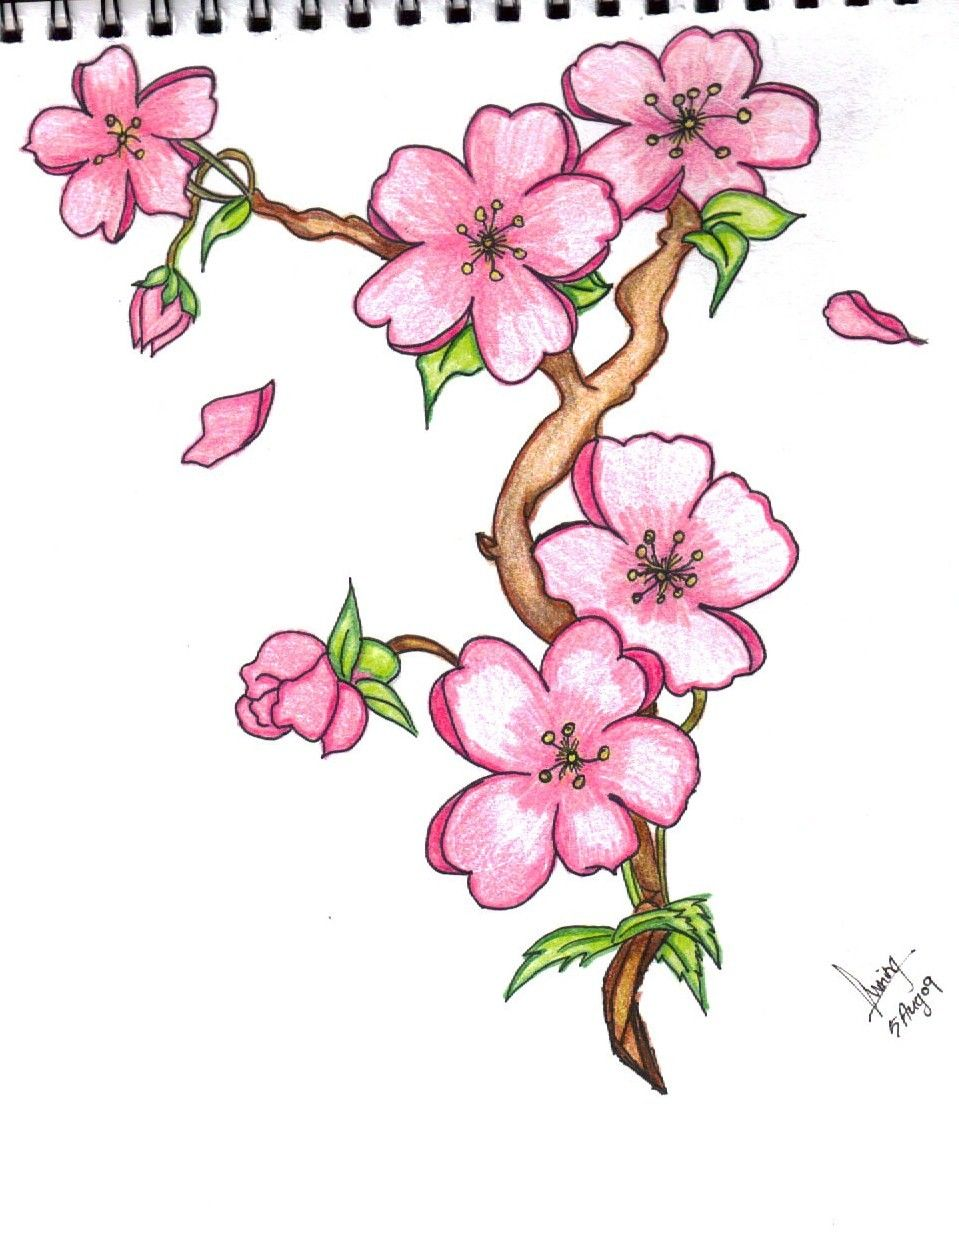 Flower Drawings | flowers drawing | Drawing board ...